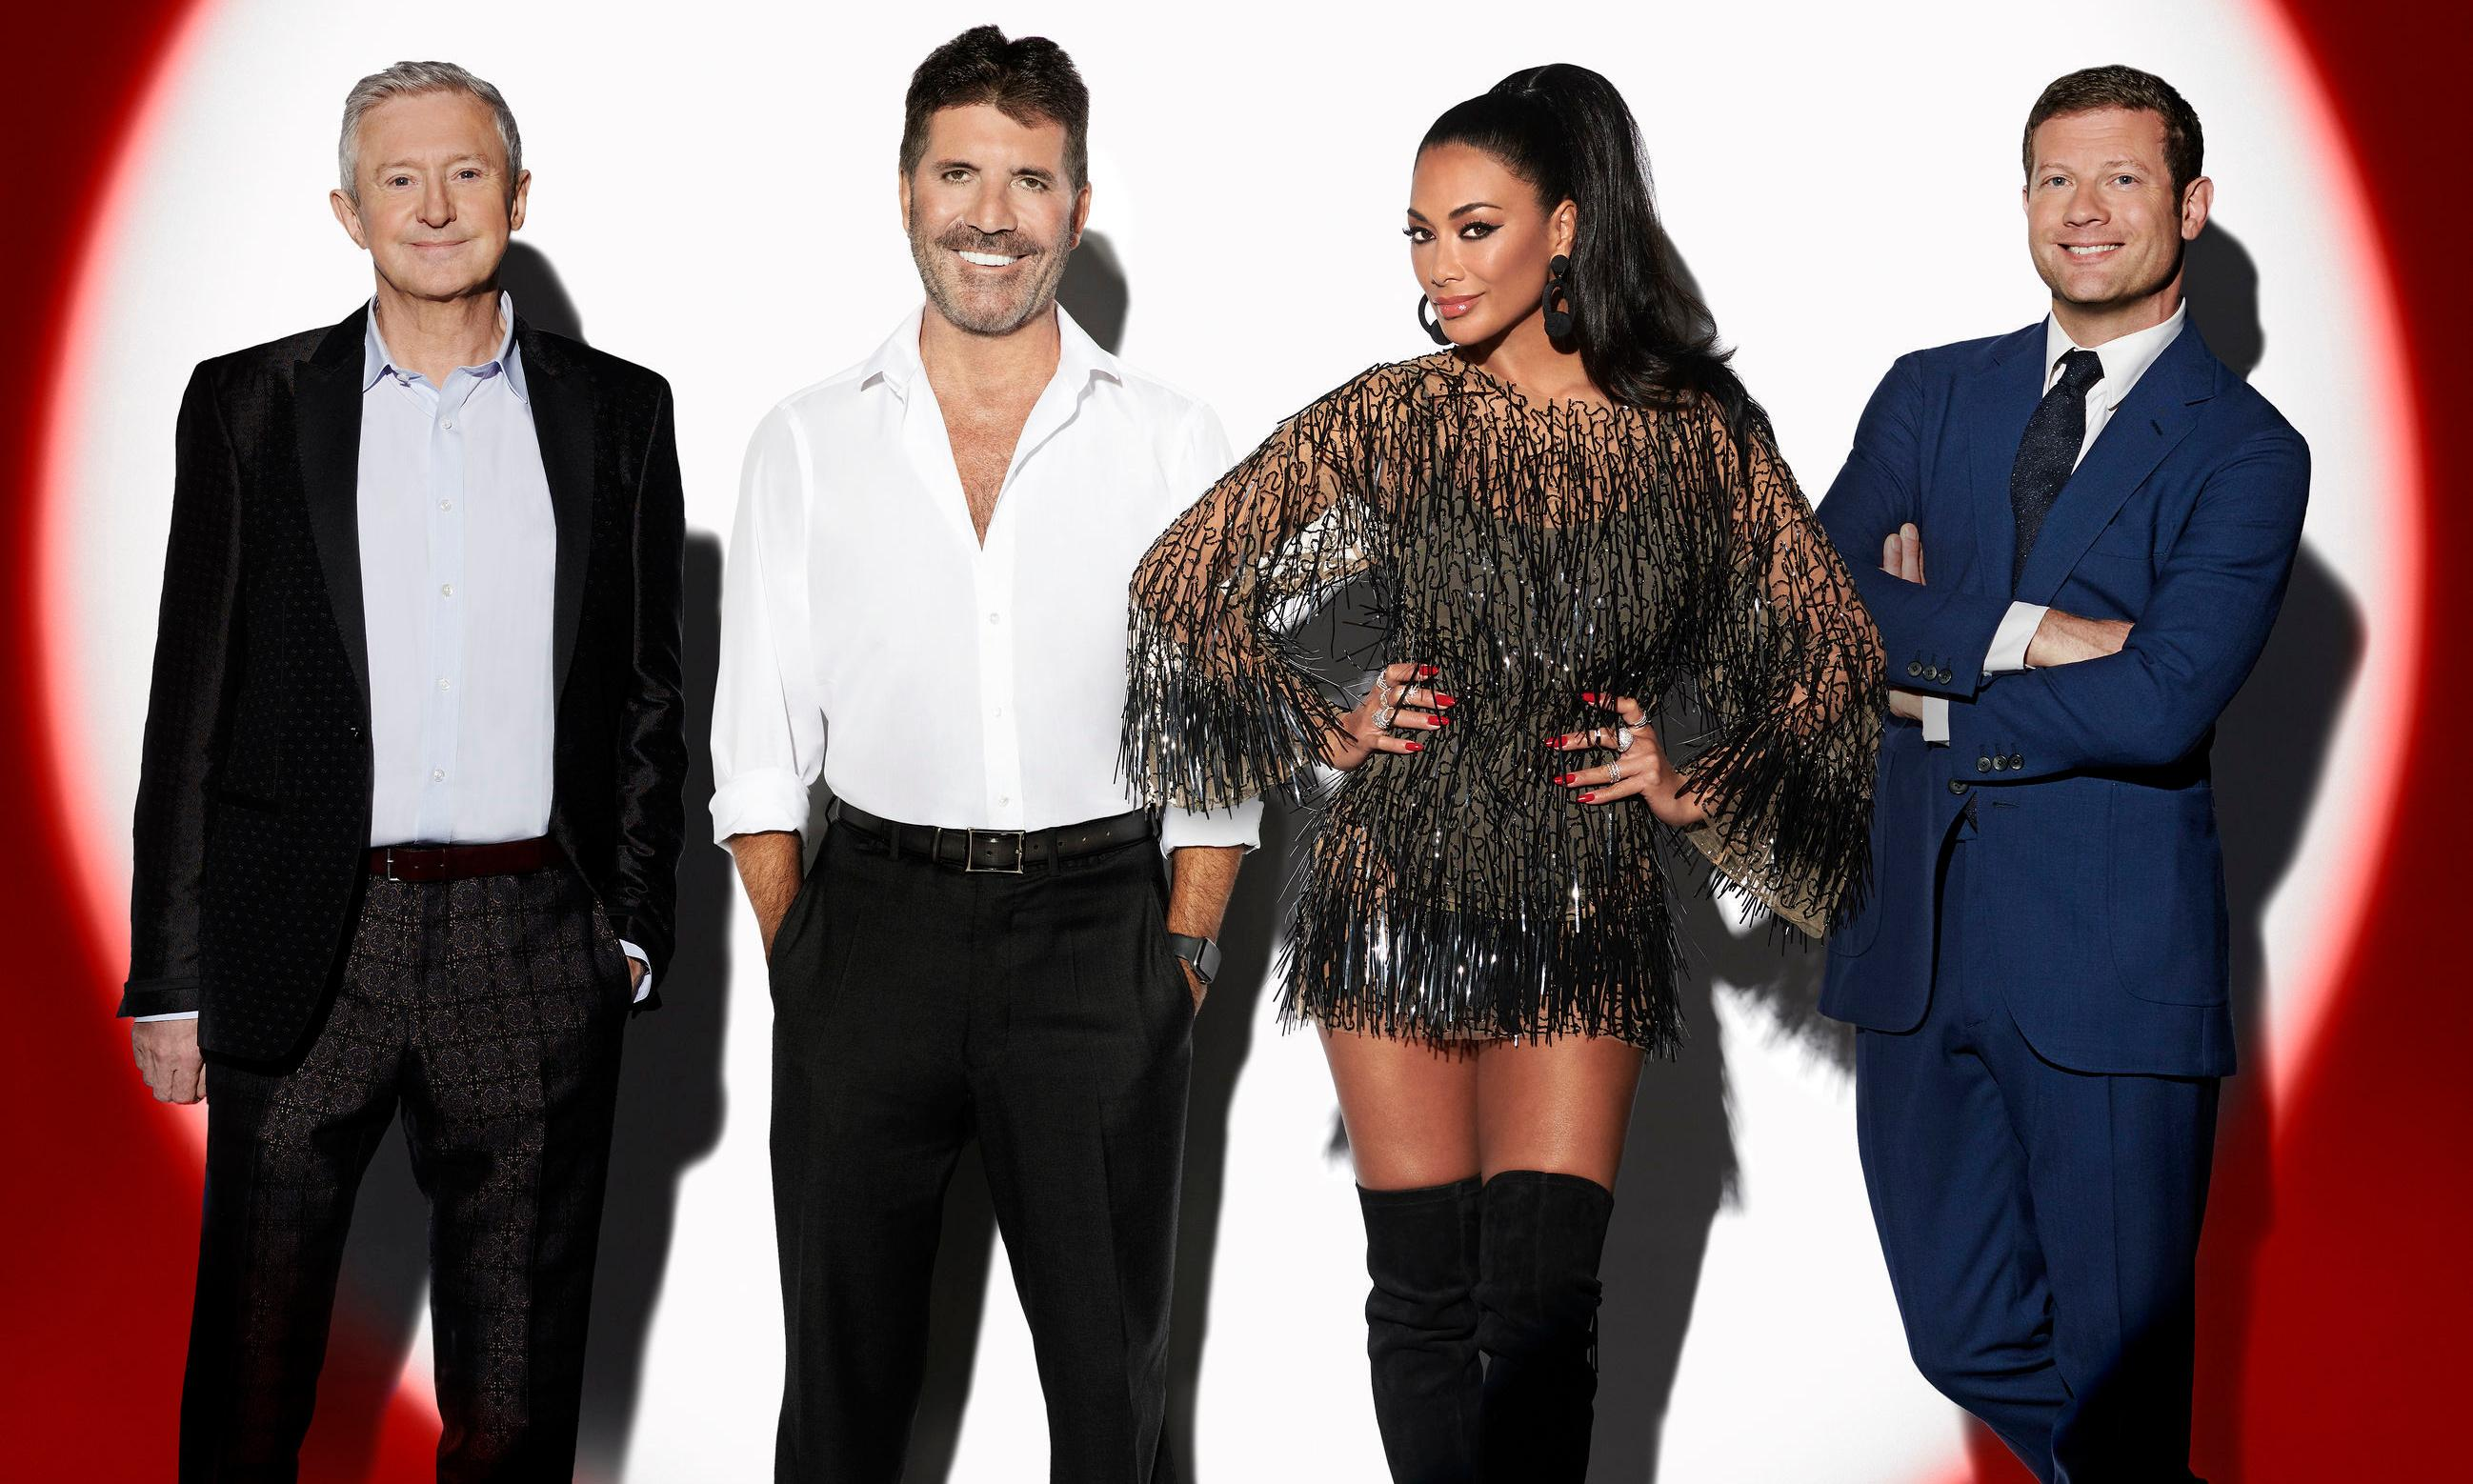 TV tonight: The X Factor returns with singing celebs in tow